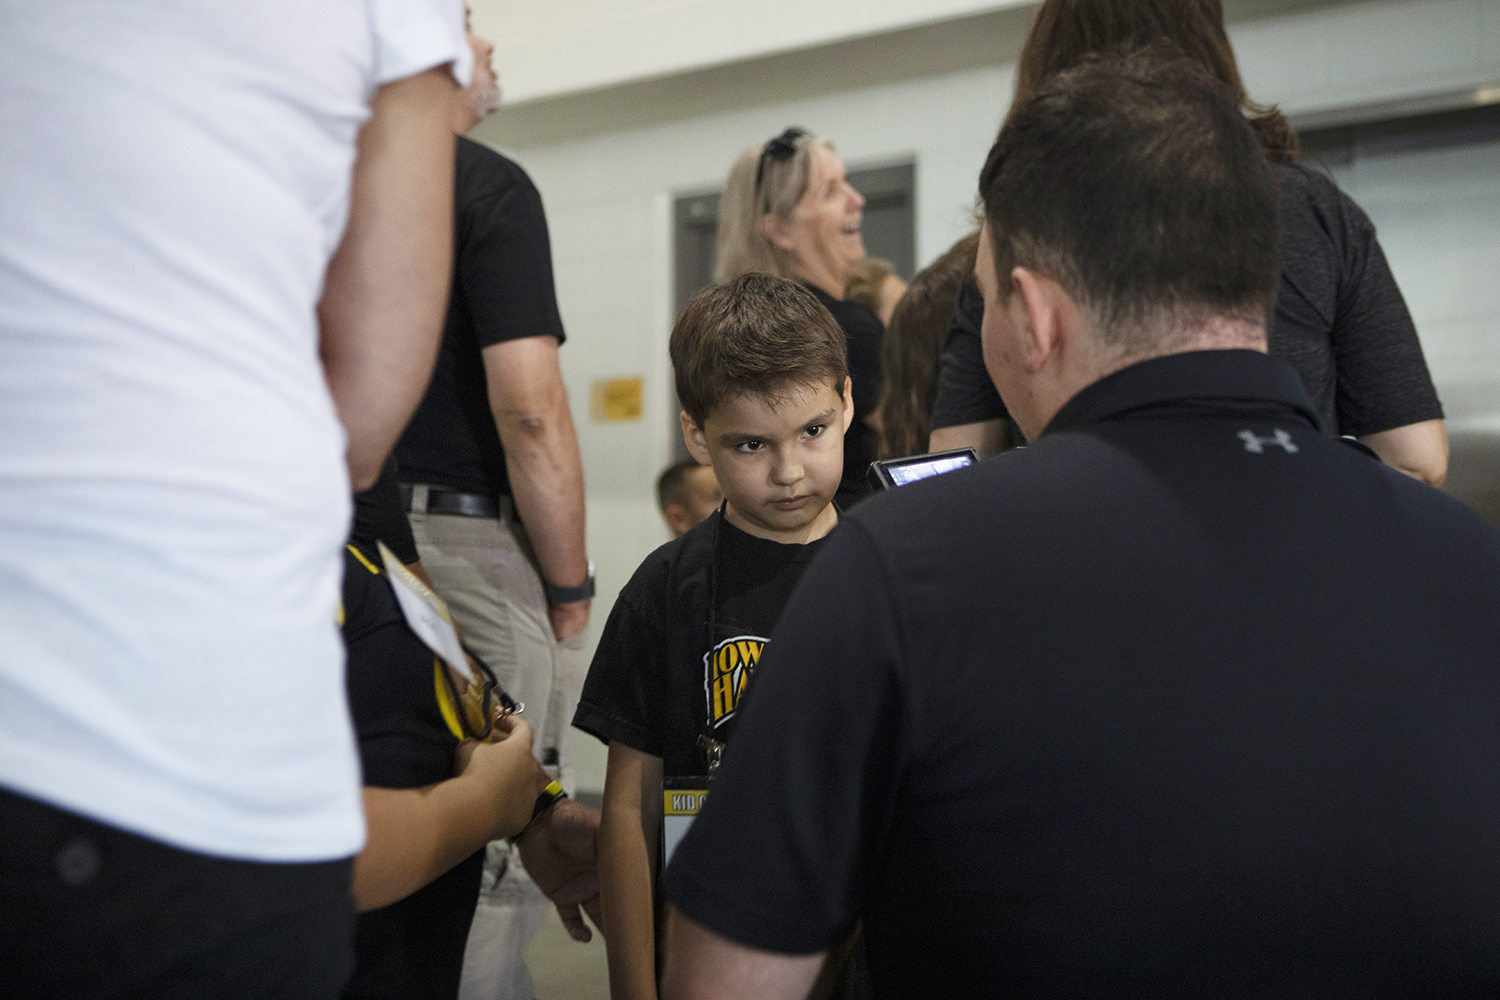 Kid Captain Jackson Tijerina talks to a reporter at Kids Day at Kinnick on Saturday, August 10, 2019. Kids Day at Kinnick is an annual event for families to experience Iowa's football stadium, while watching preseason practice and honoring this year's Kid Captains.